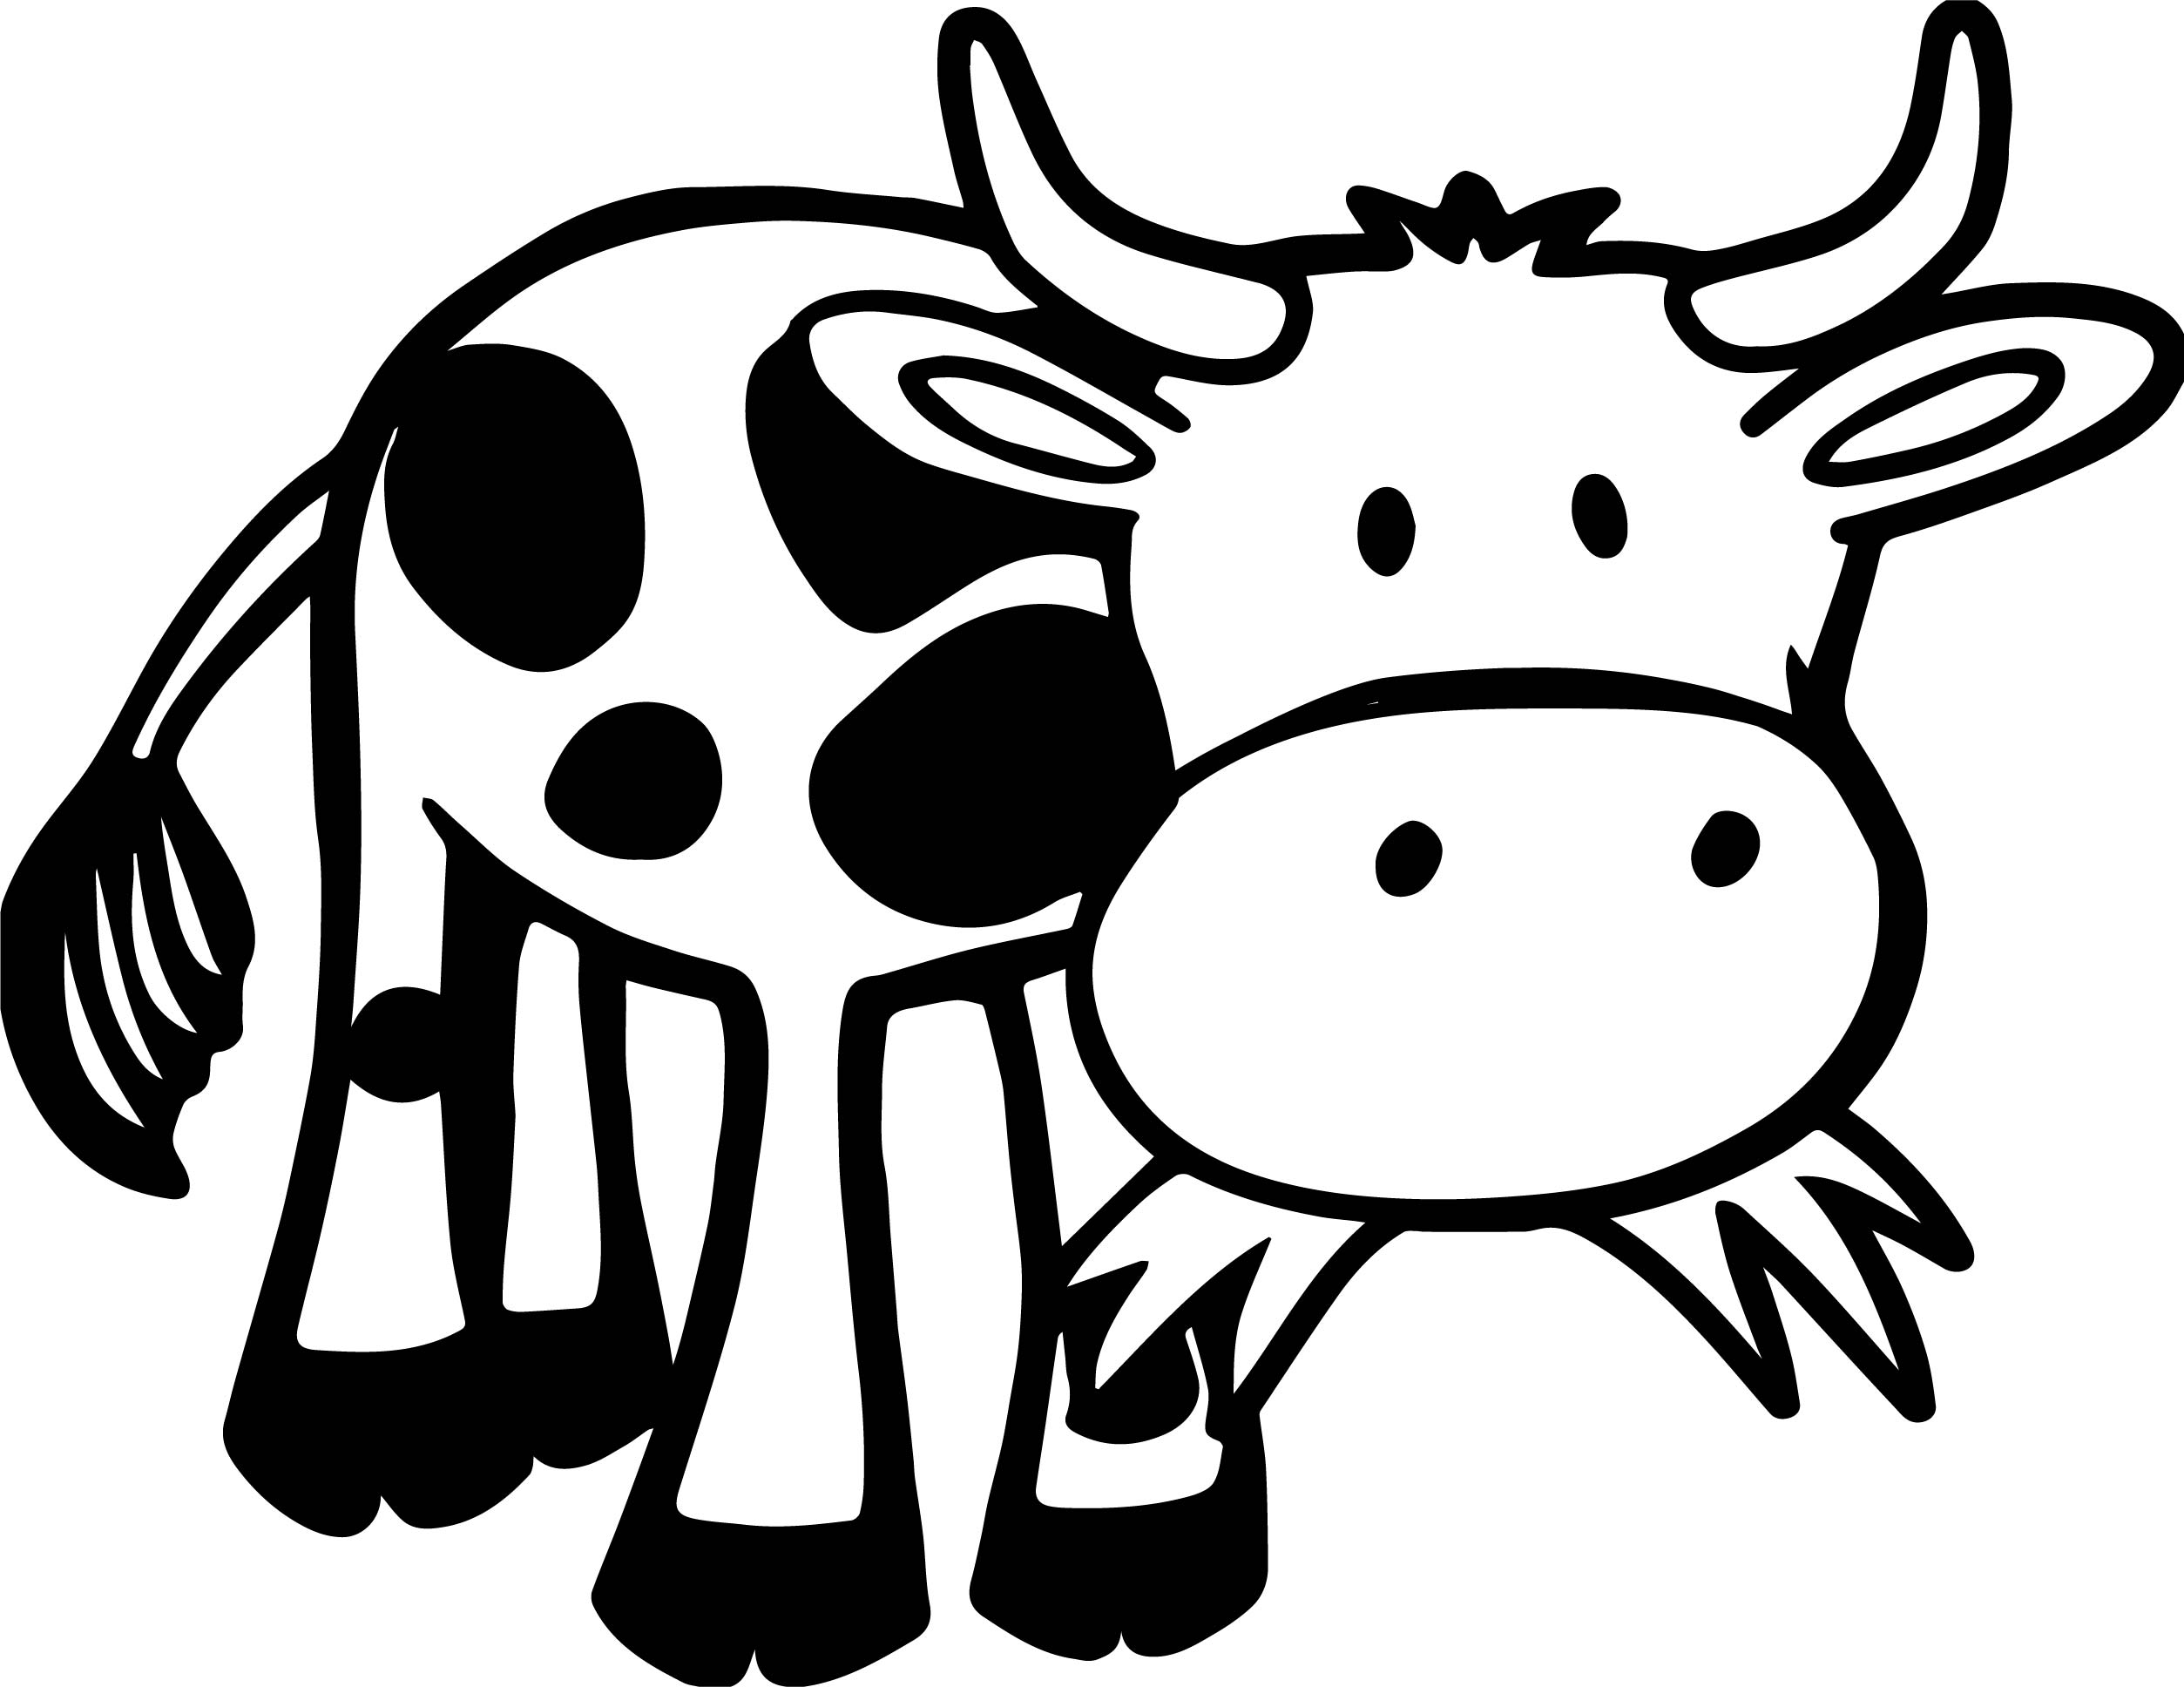 coloring picture of cow cow66 coloring page free cow coloring pages picture coloring cow of